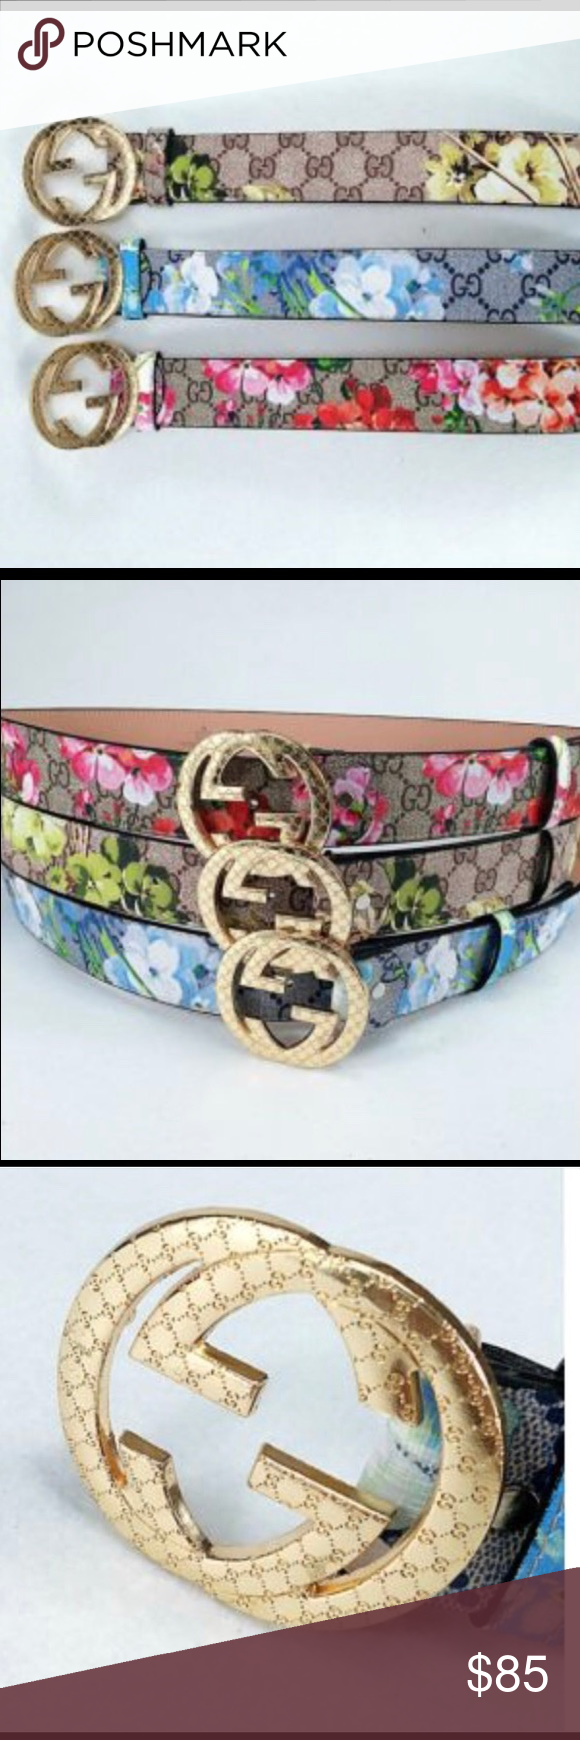 ab08ba2eaa4 Gucci Belt Floral Gucci Belts. Sizes vary